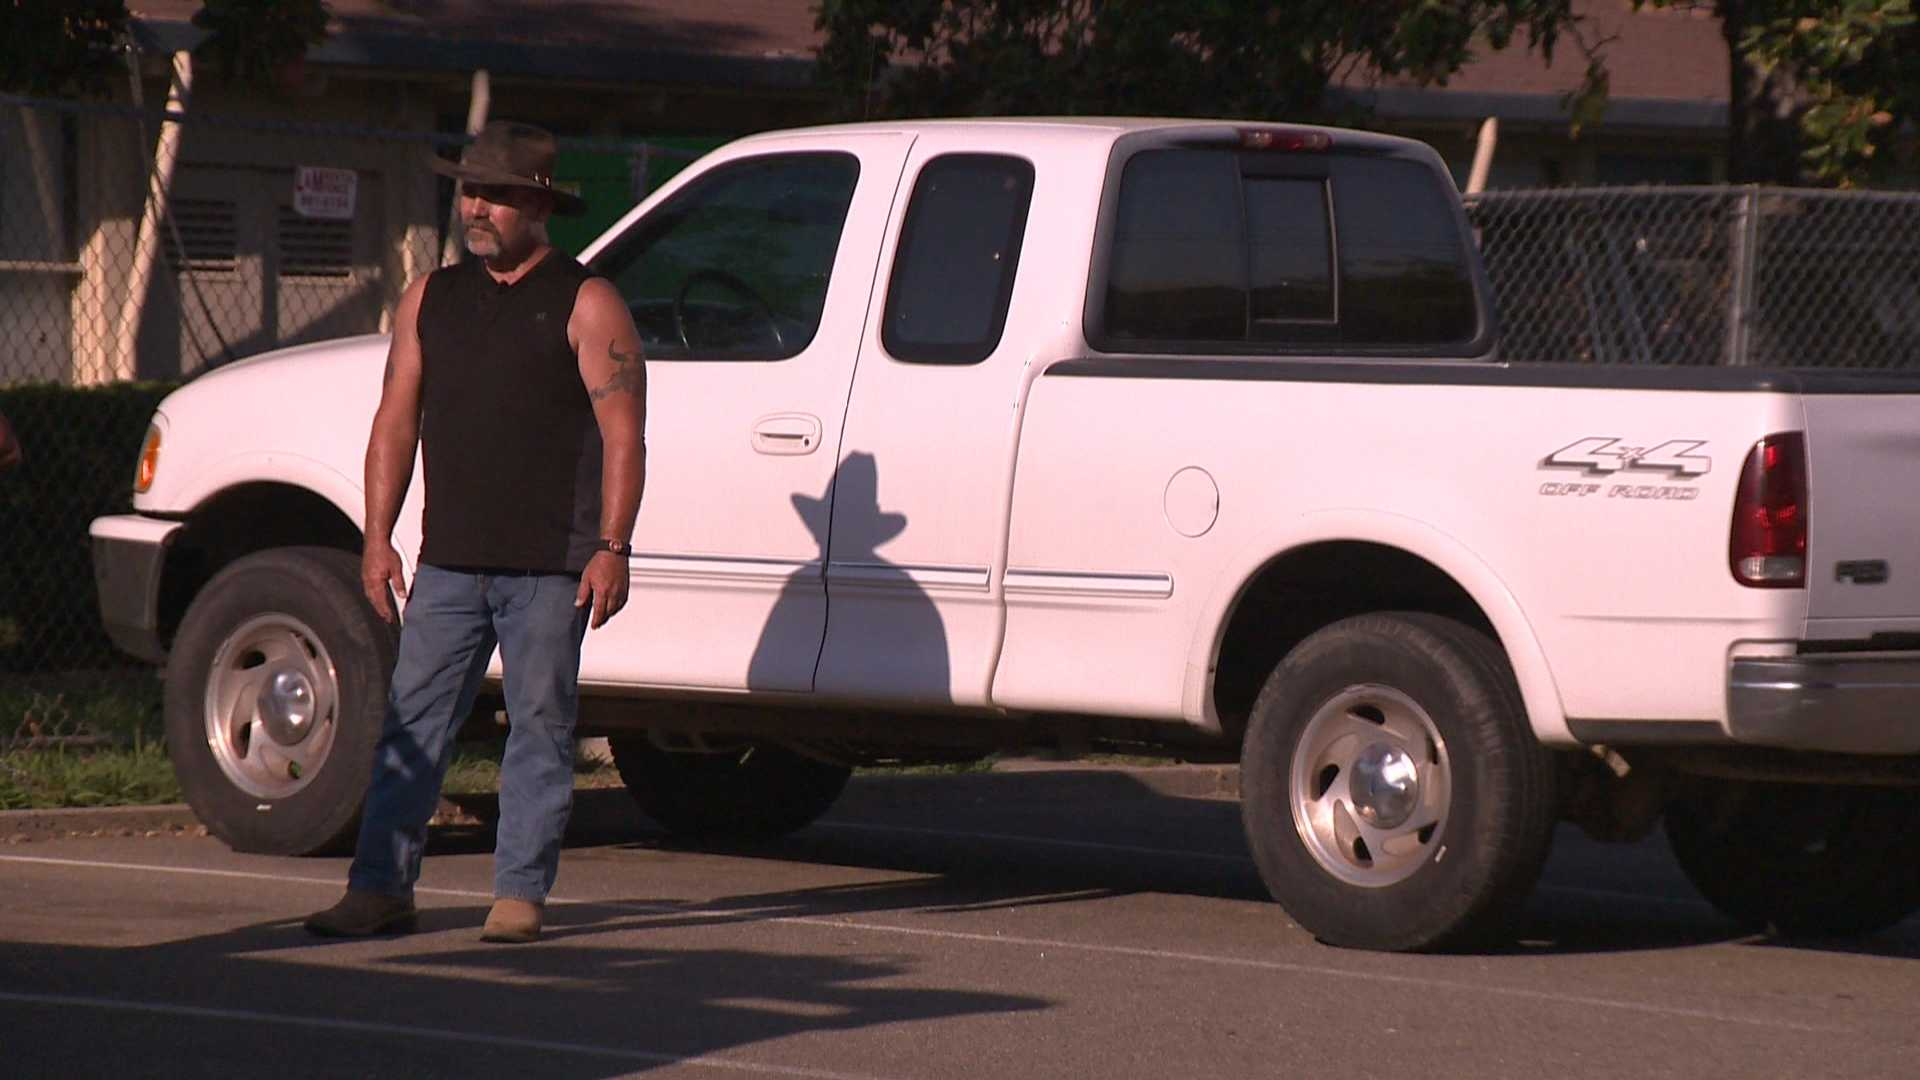 Mark stands in front of his truck, which thieves was broke into and stole his weapons.